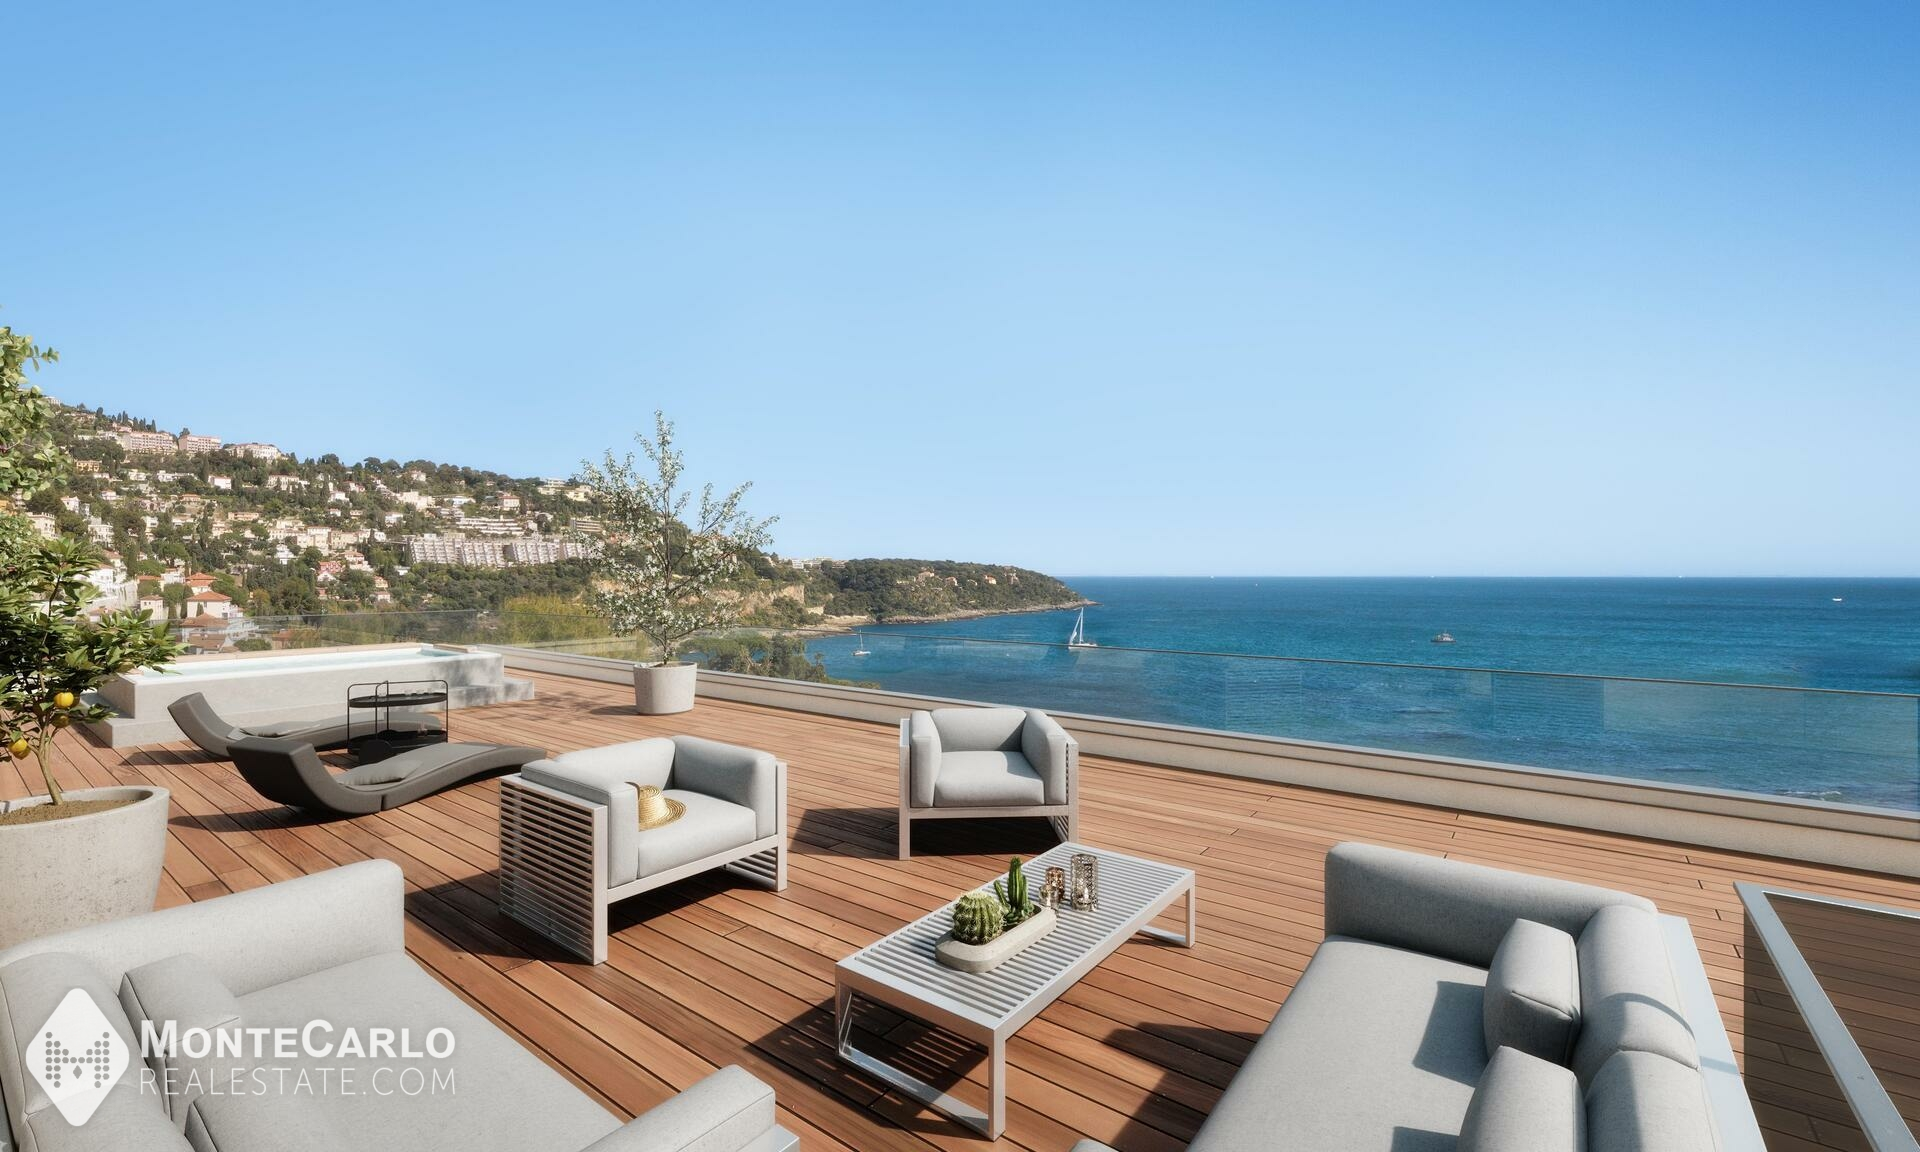 For sale Roquebrune-Cap-Martin - Penthouse/Roof / +5 rooms : 6 700 000 €   Monte-Carlo Real Estate [VF0920-86]